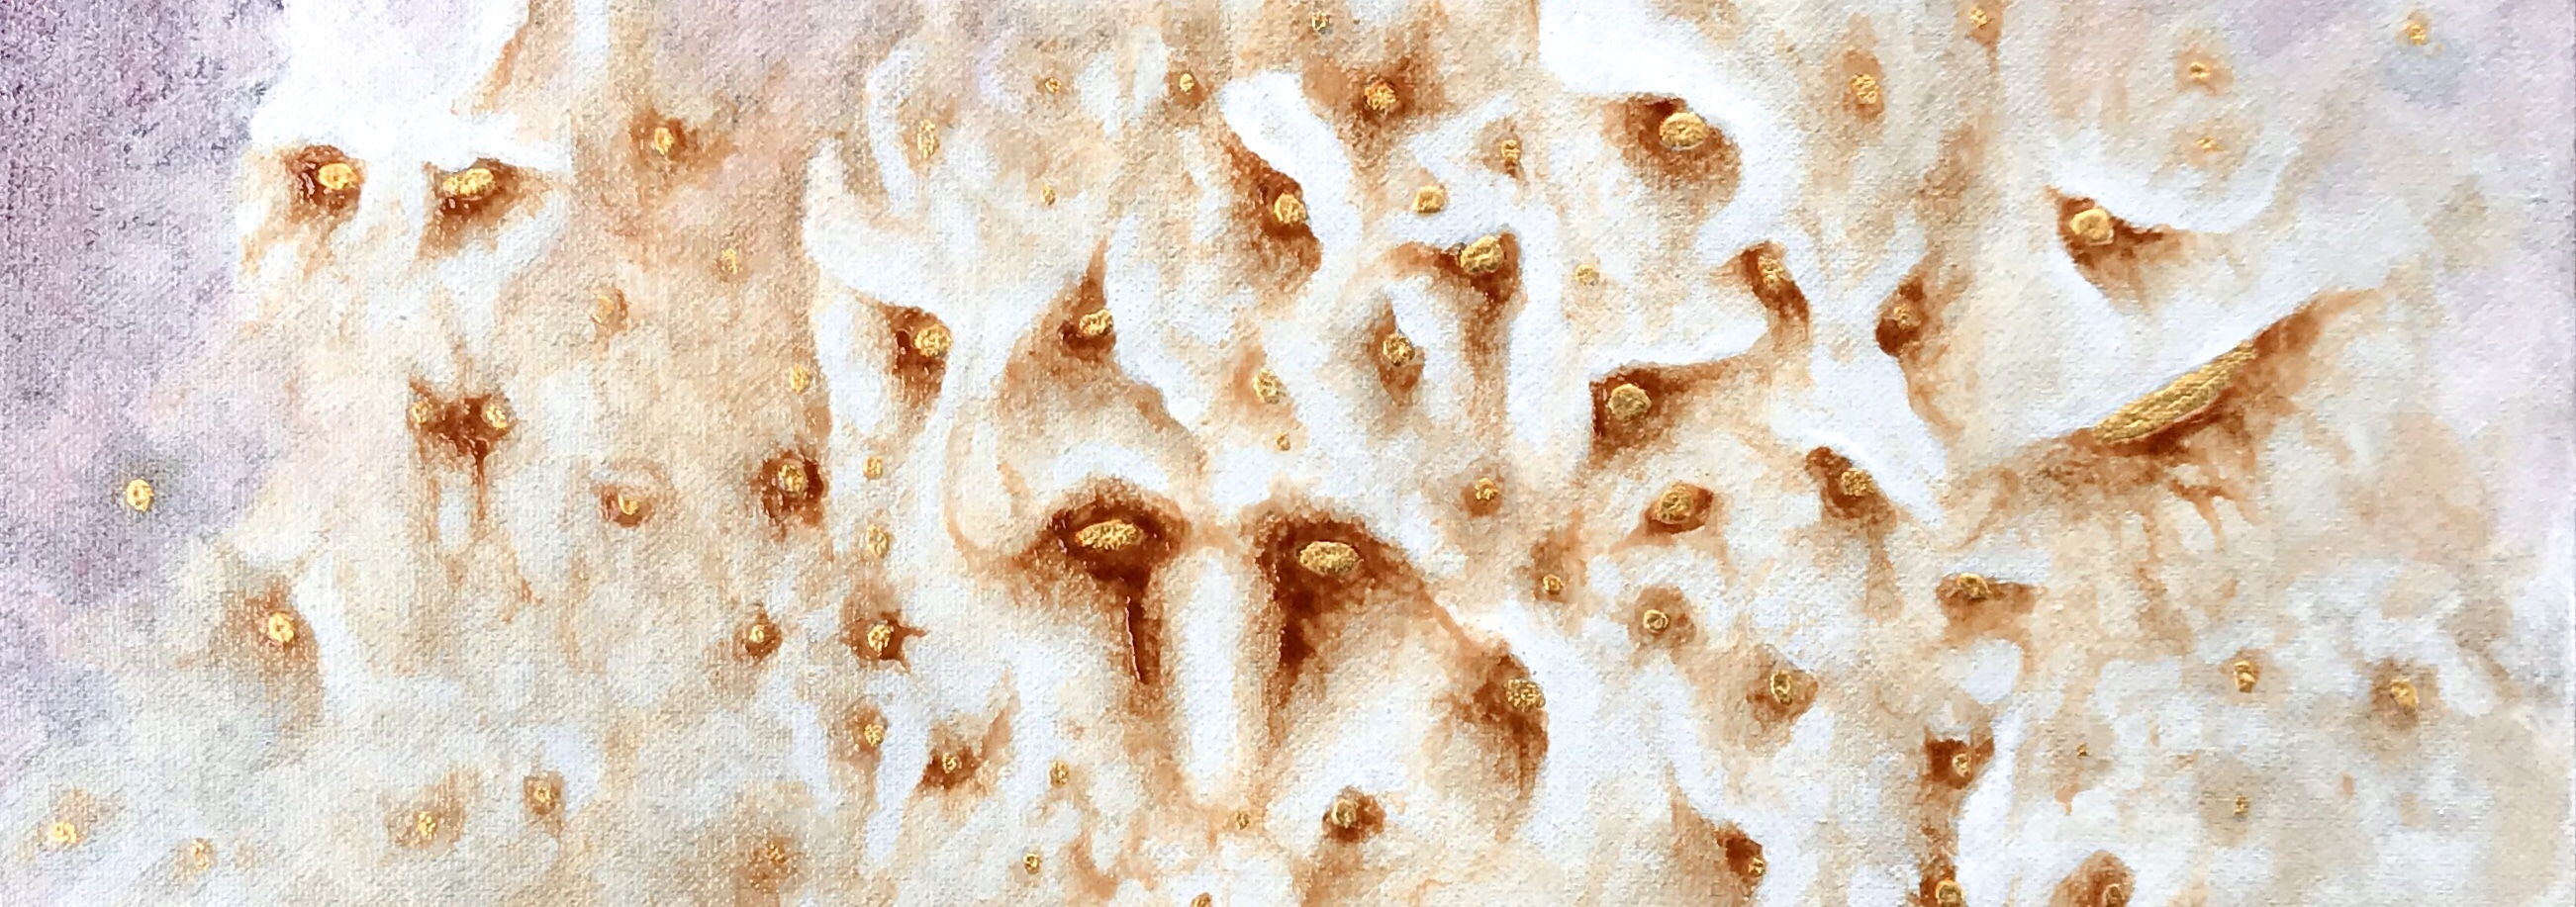 detail of an abstract painting by MJ Seal that looks vaguely like a creamy white rock formation and a phantasmagorical flock of menacing owls with glinting eyes of gold